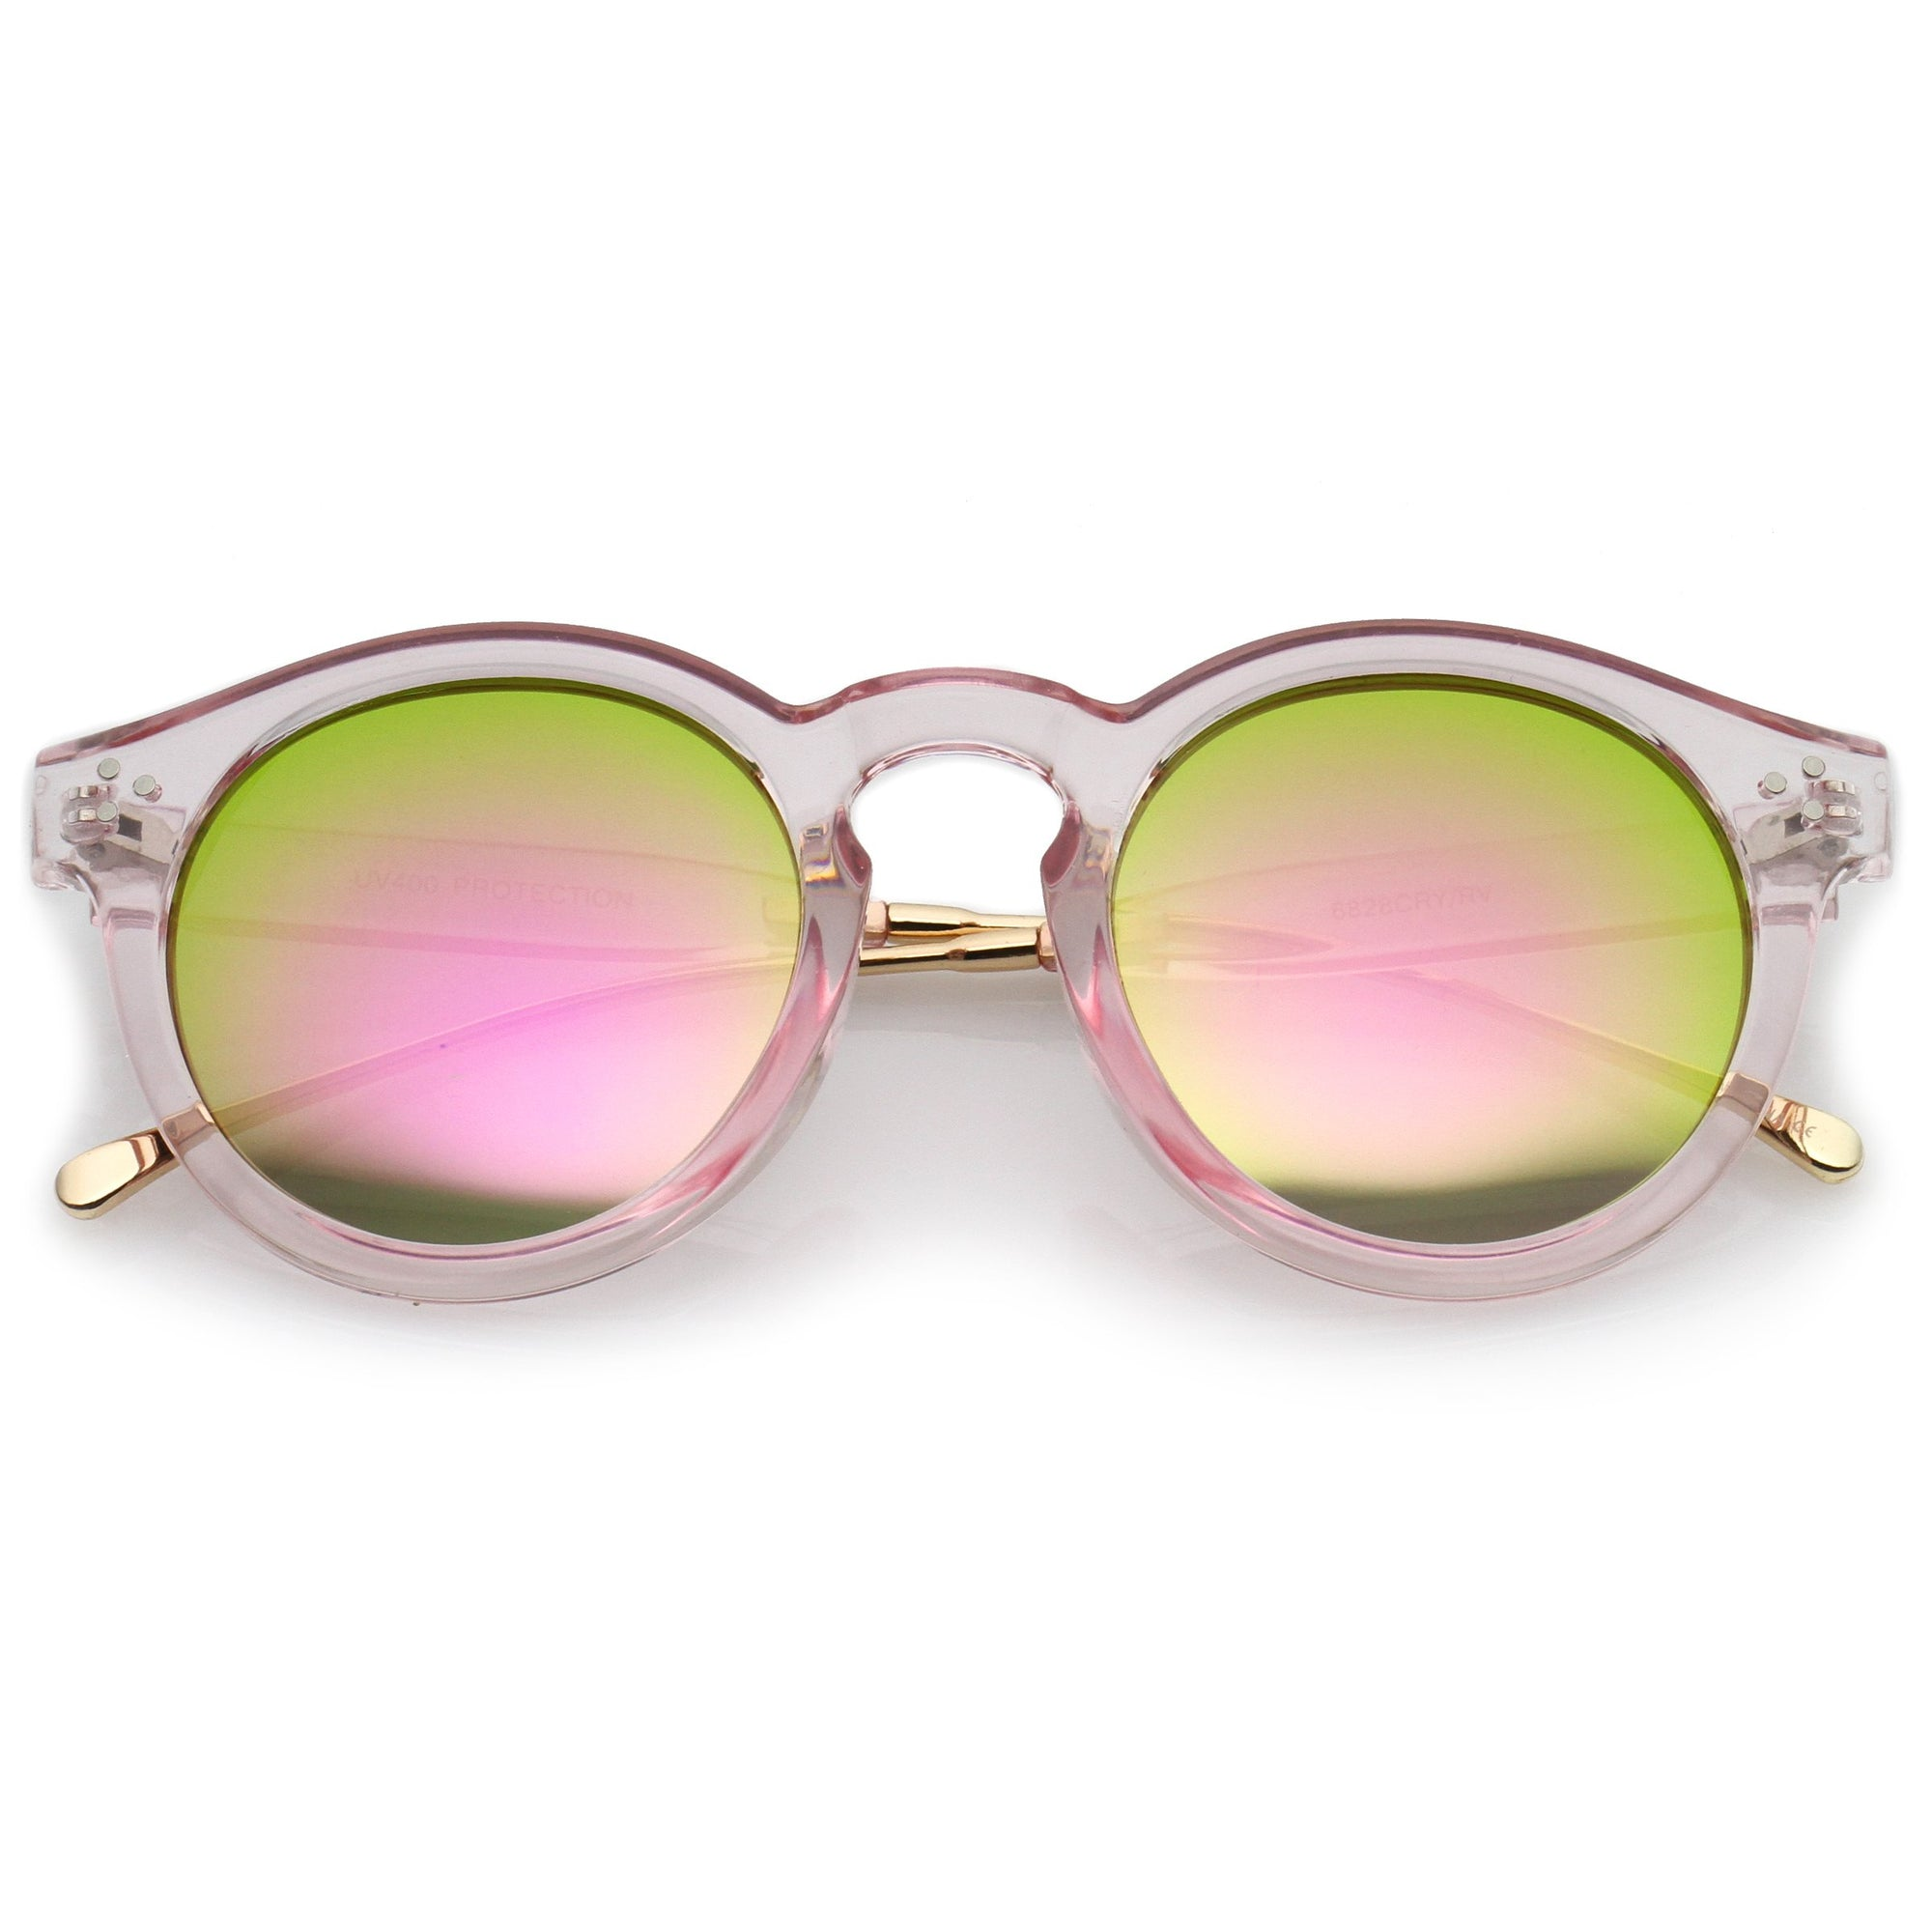 7118f38bce ... Trendy Transparent Color Mirrored Lens Round P3 Sunglasses A780 · Pink  Gold Pink Mirror